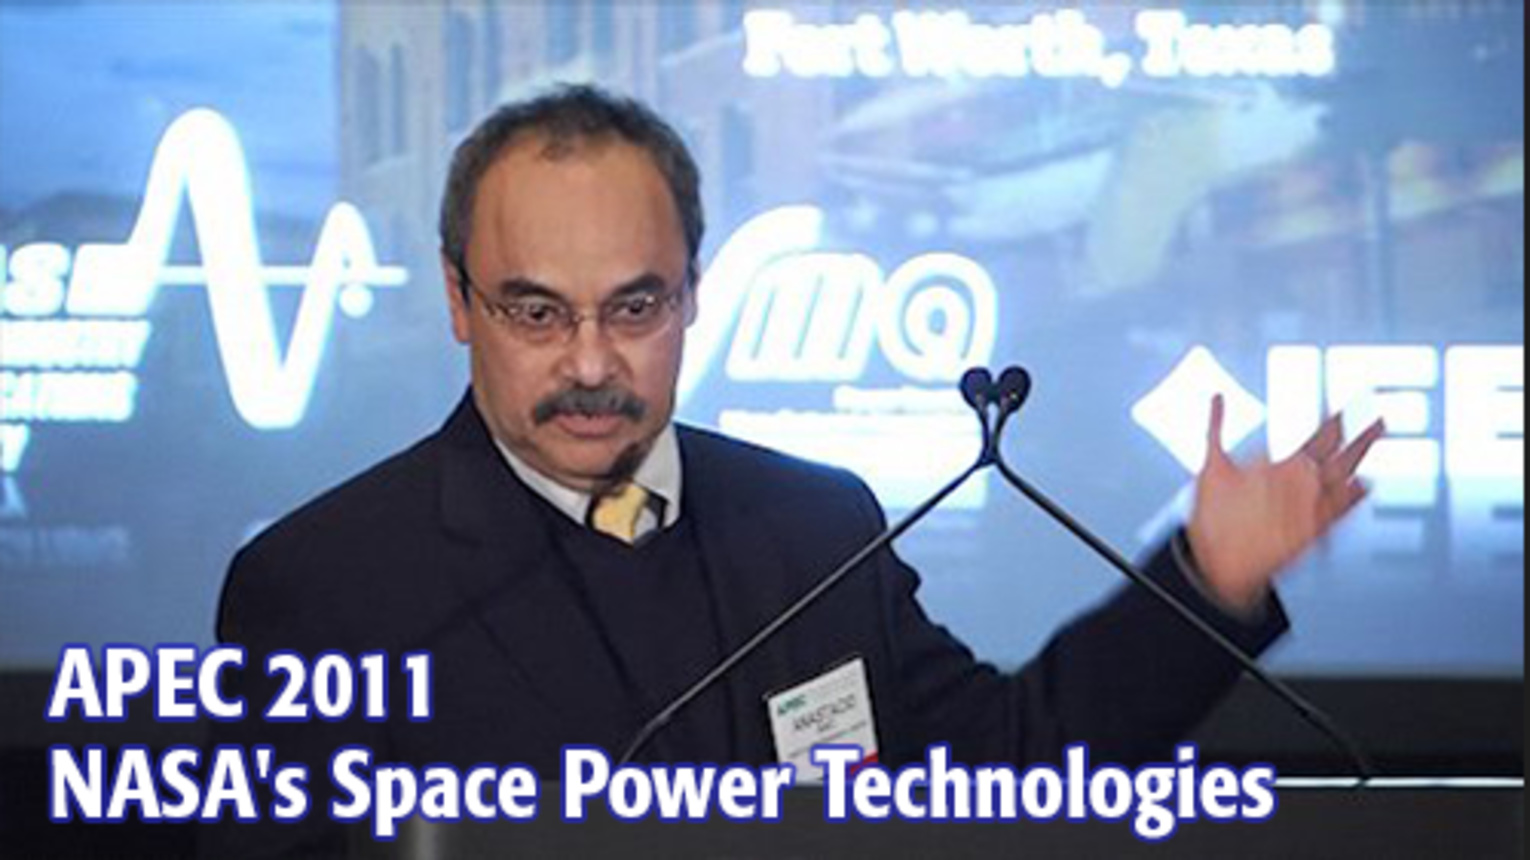 APEC 2011-NASA's Space Power Technologies